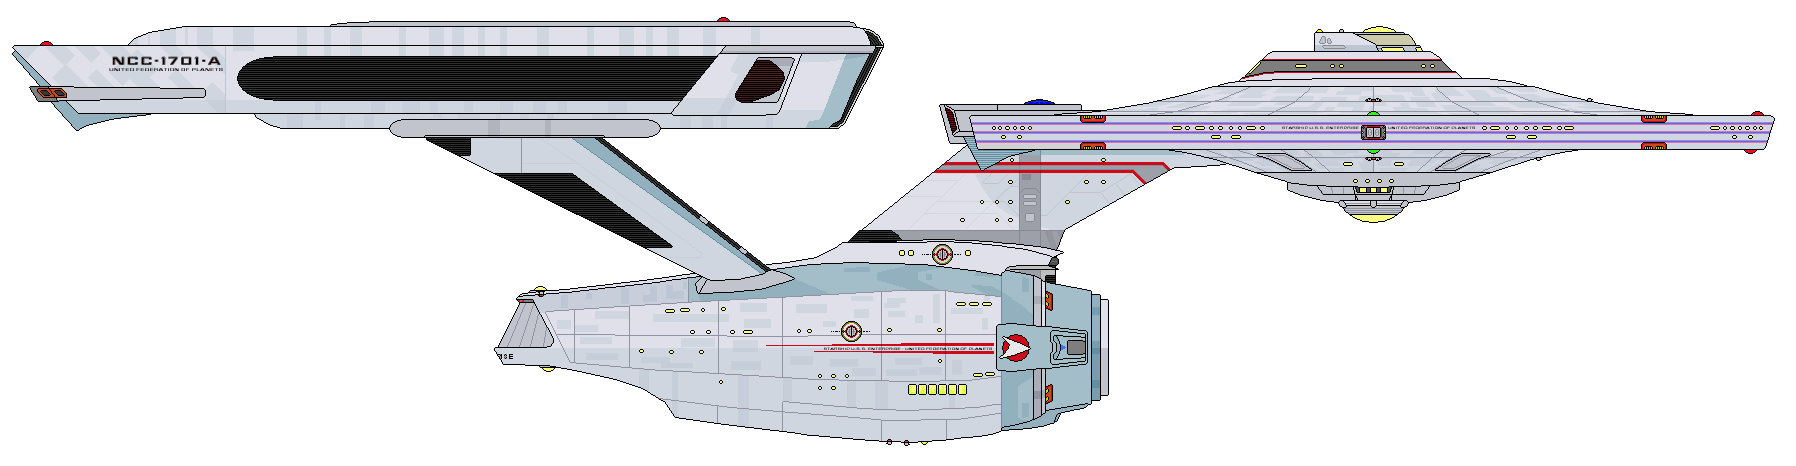 Starboard Schematic Of U S S Enterprise Ncc 1701 A Uss Enterprise Star Trek Star Trek Ships Star Trek Movies